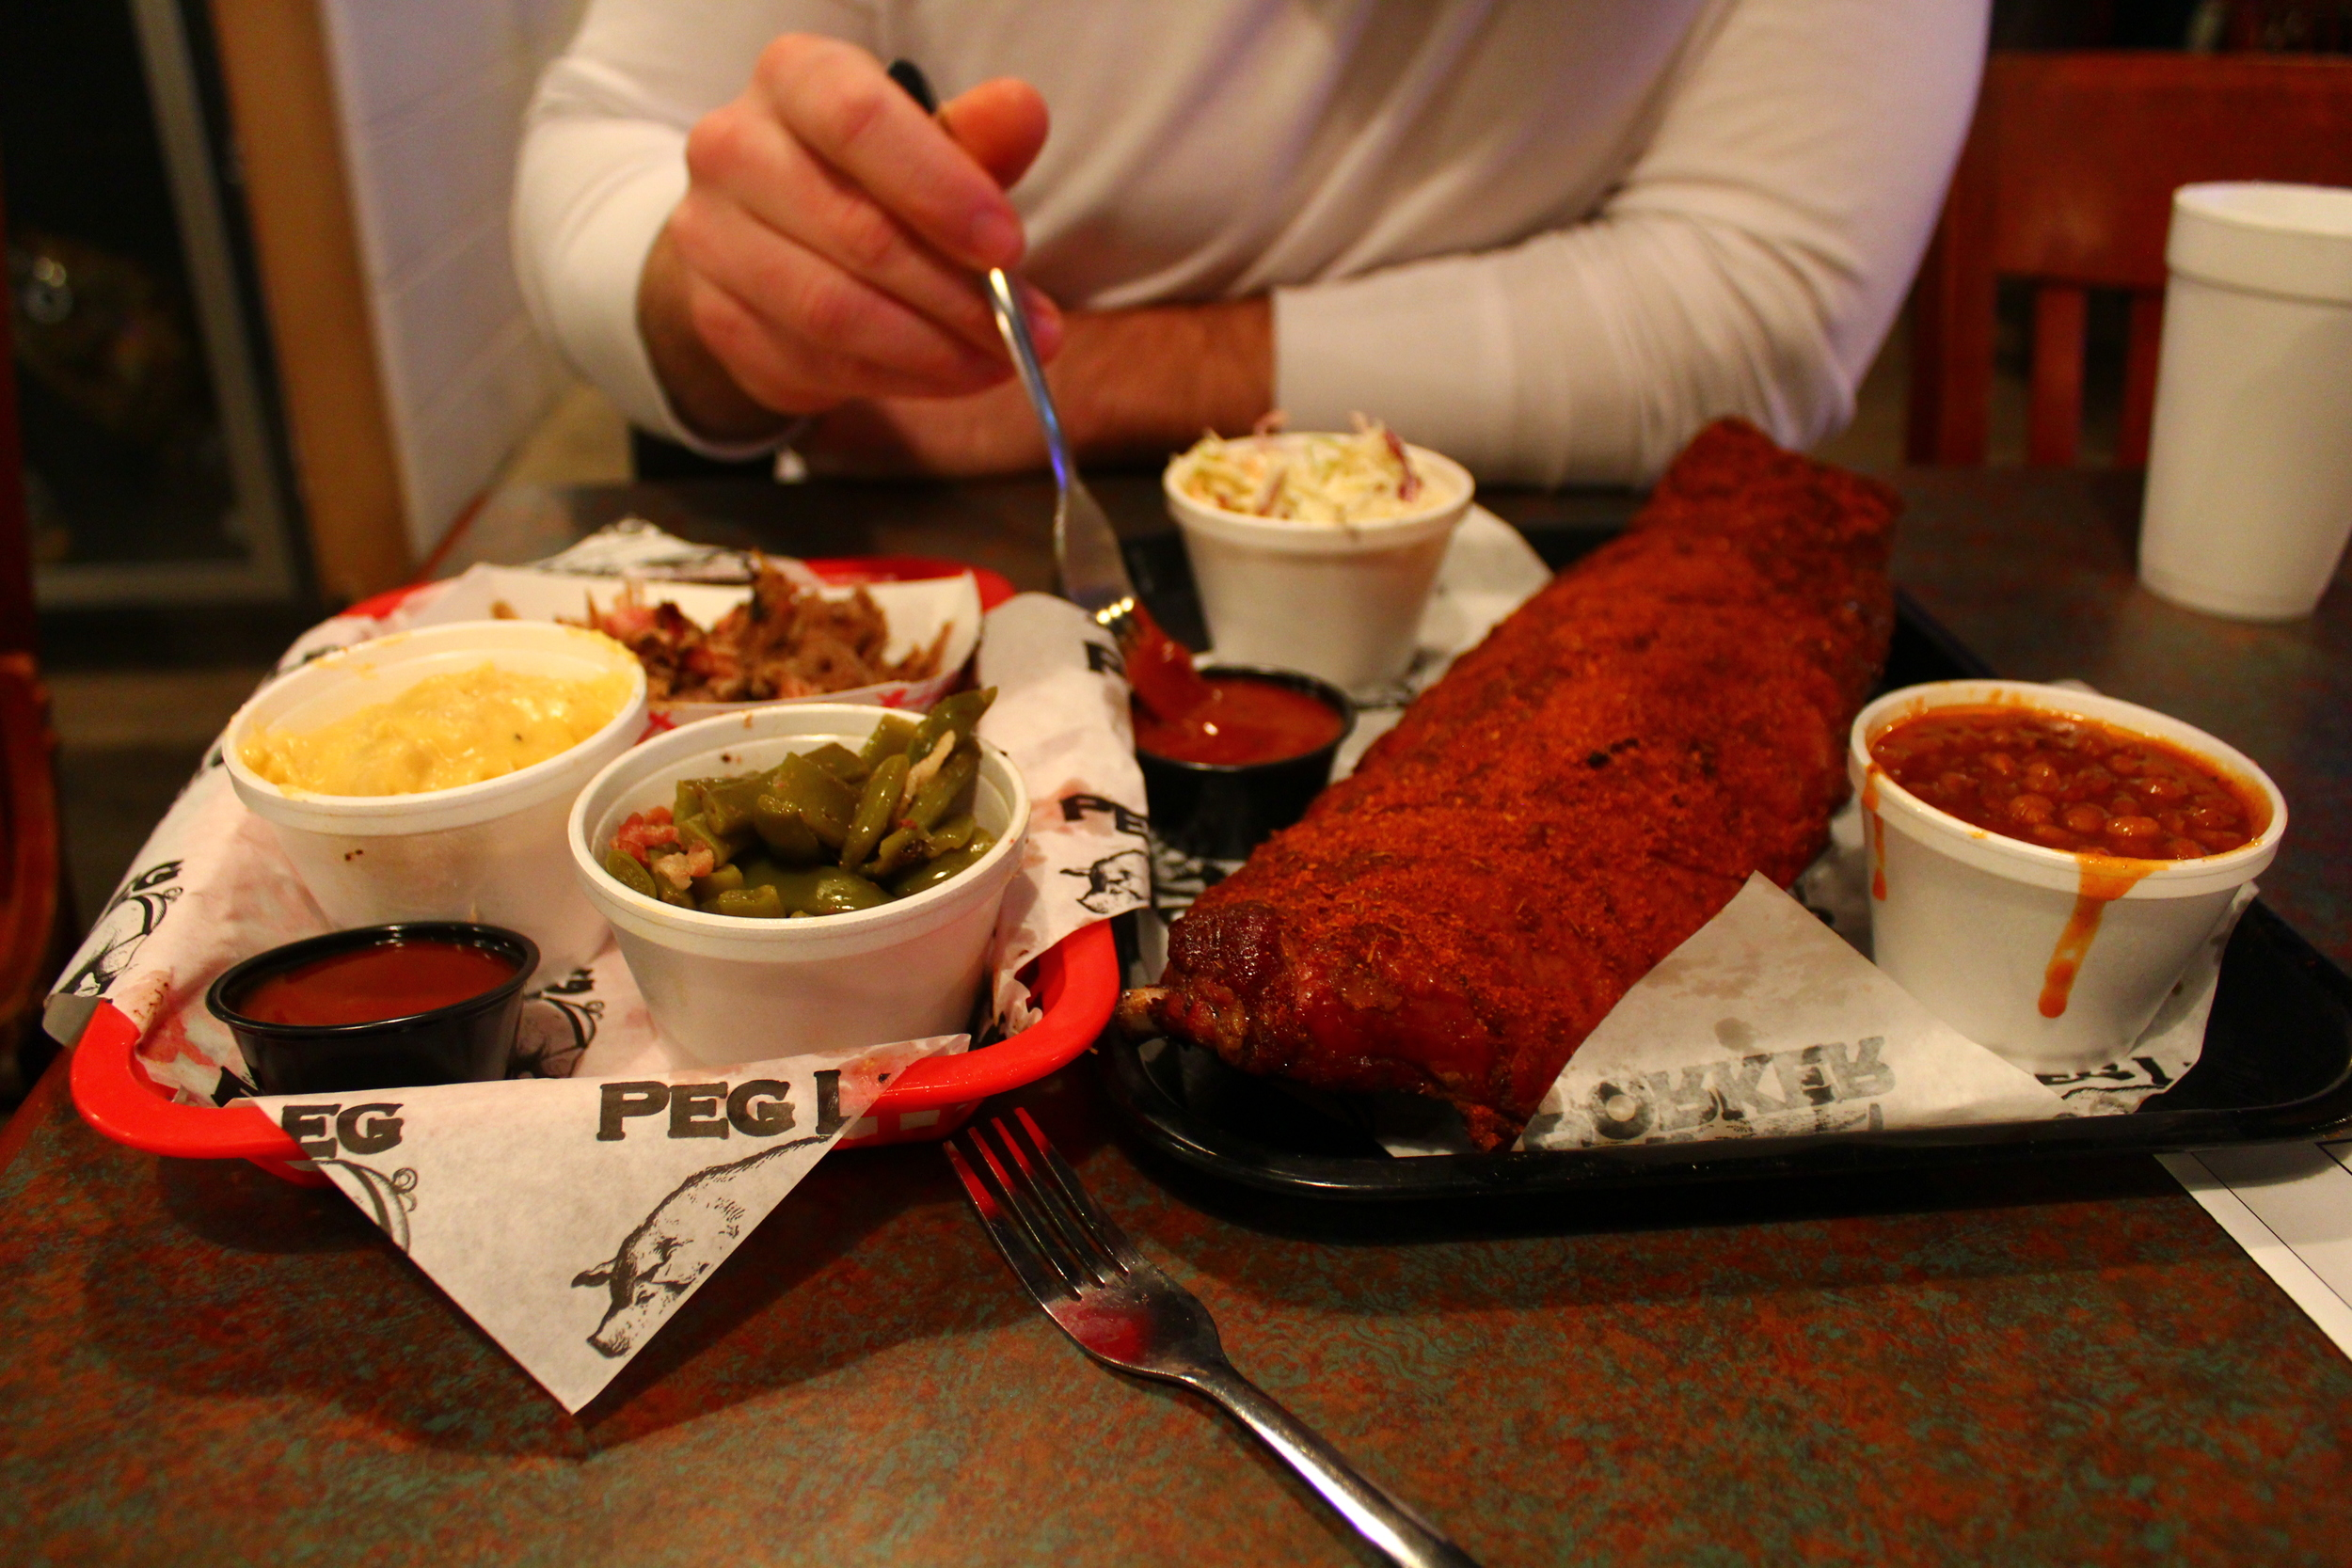 WHAT WE ATE DURING OUR WEEKEND IN NASHVILLE, TENNESSEE